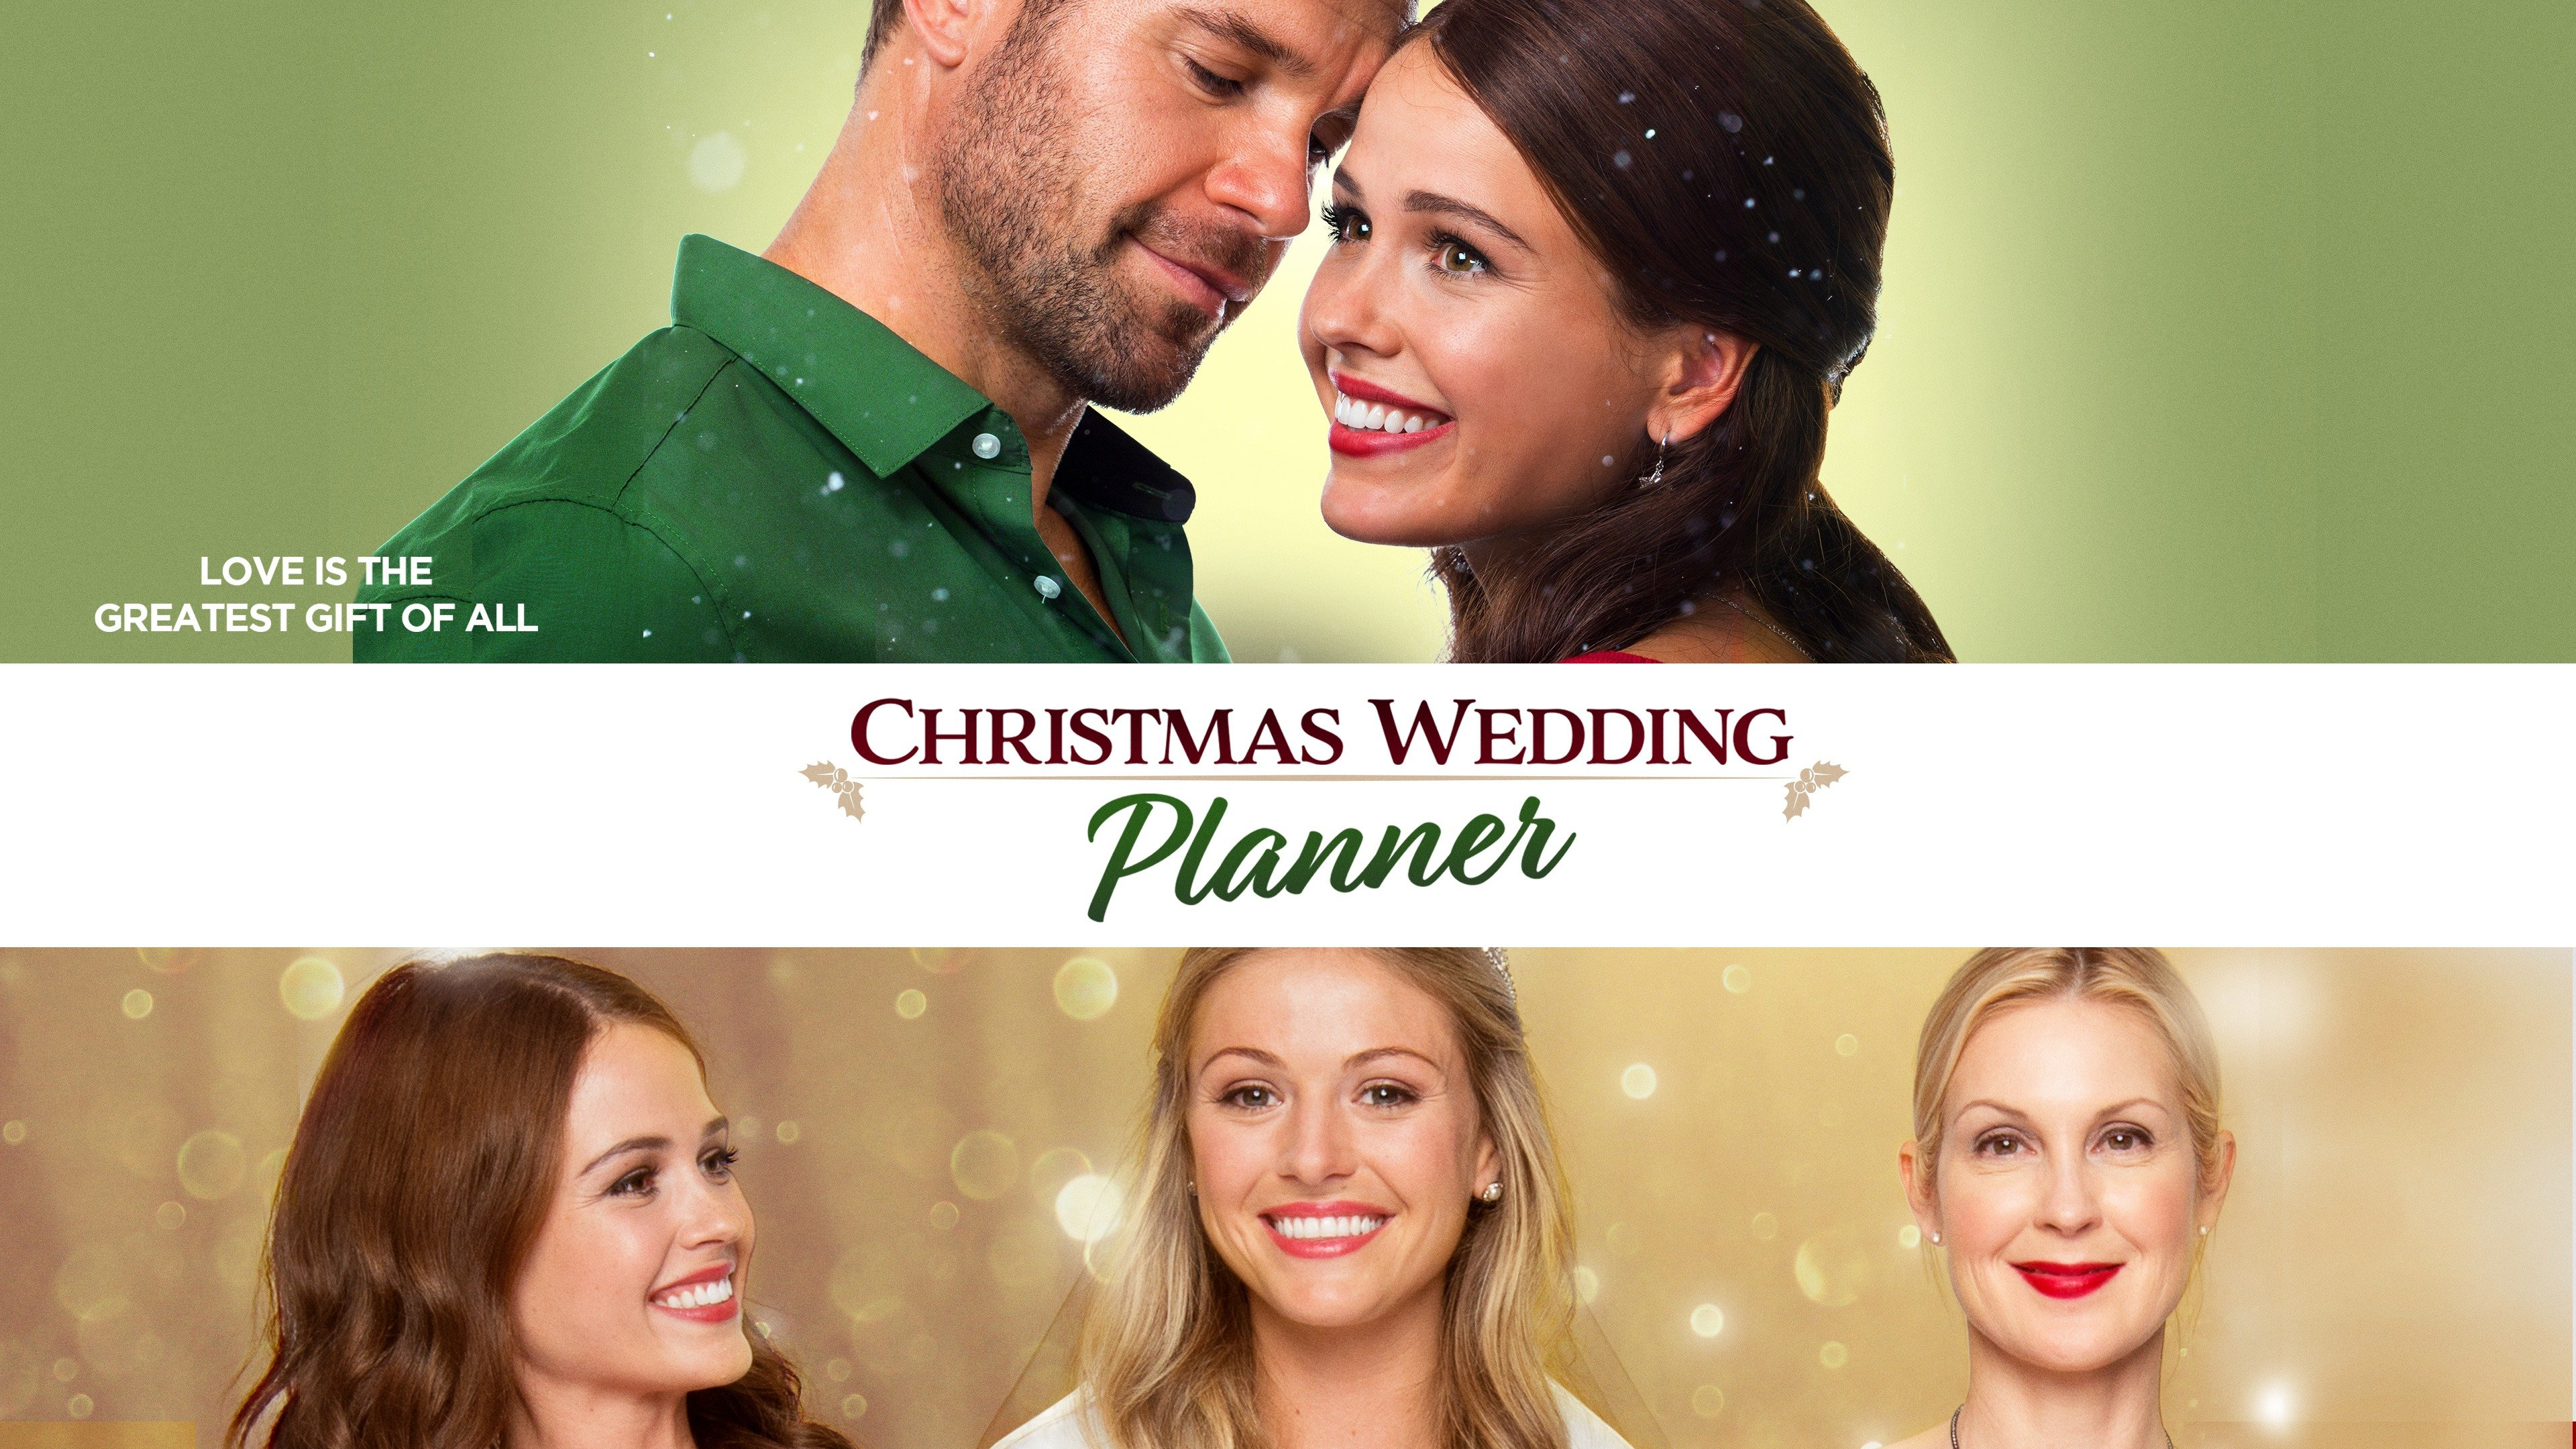 Christmas Wedding Planner.Christmas Wedding Planner Flixster